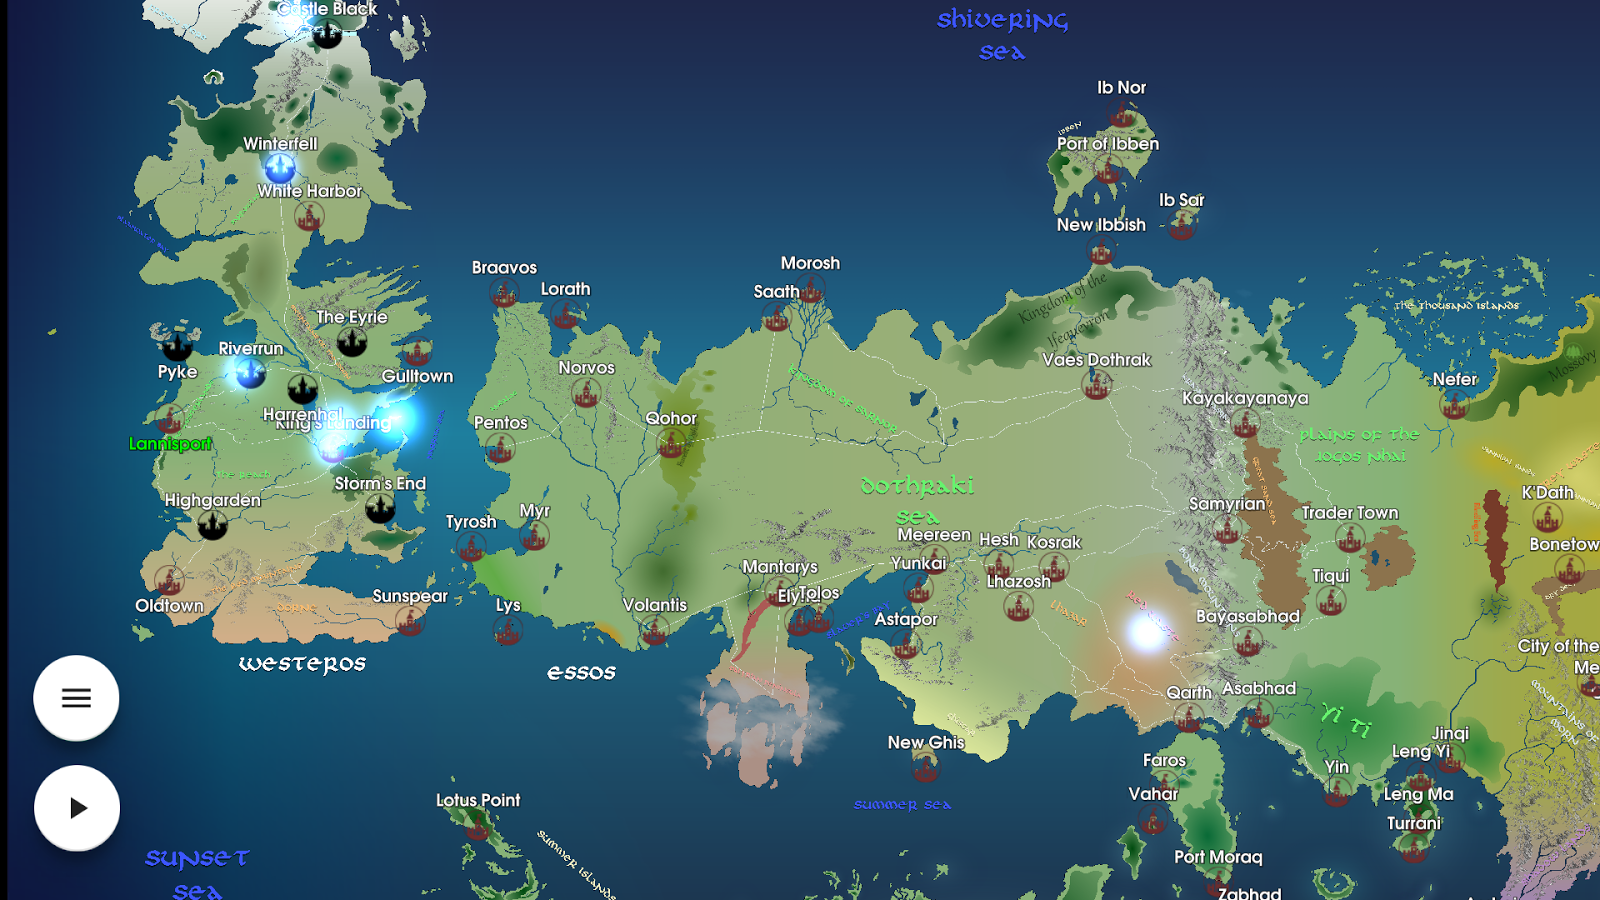 Map for game of thrones free 281 apk download android map for game of thrones free 281 screenshot 1 gumiabroncs Image collections